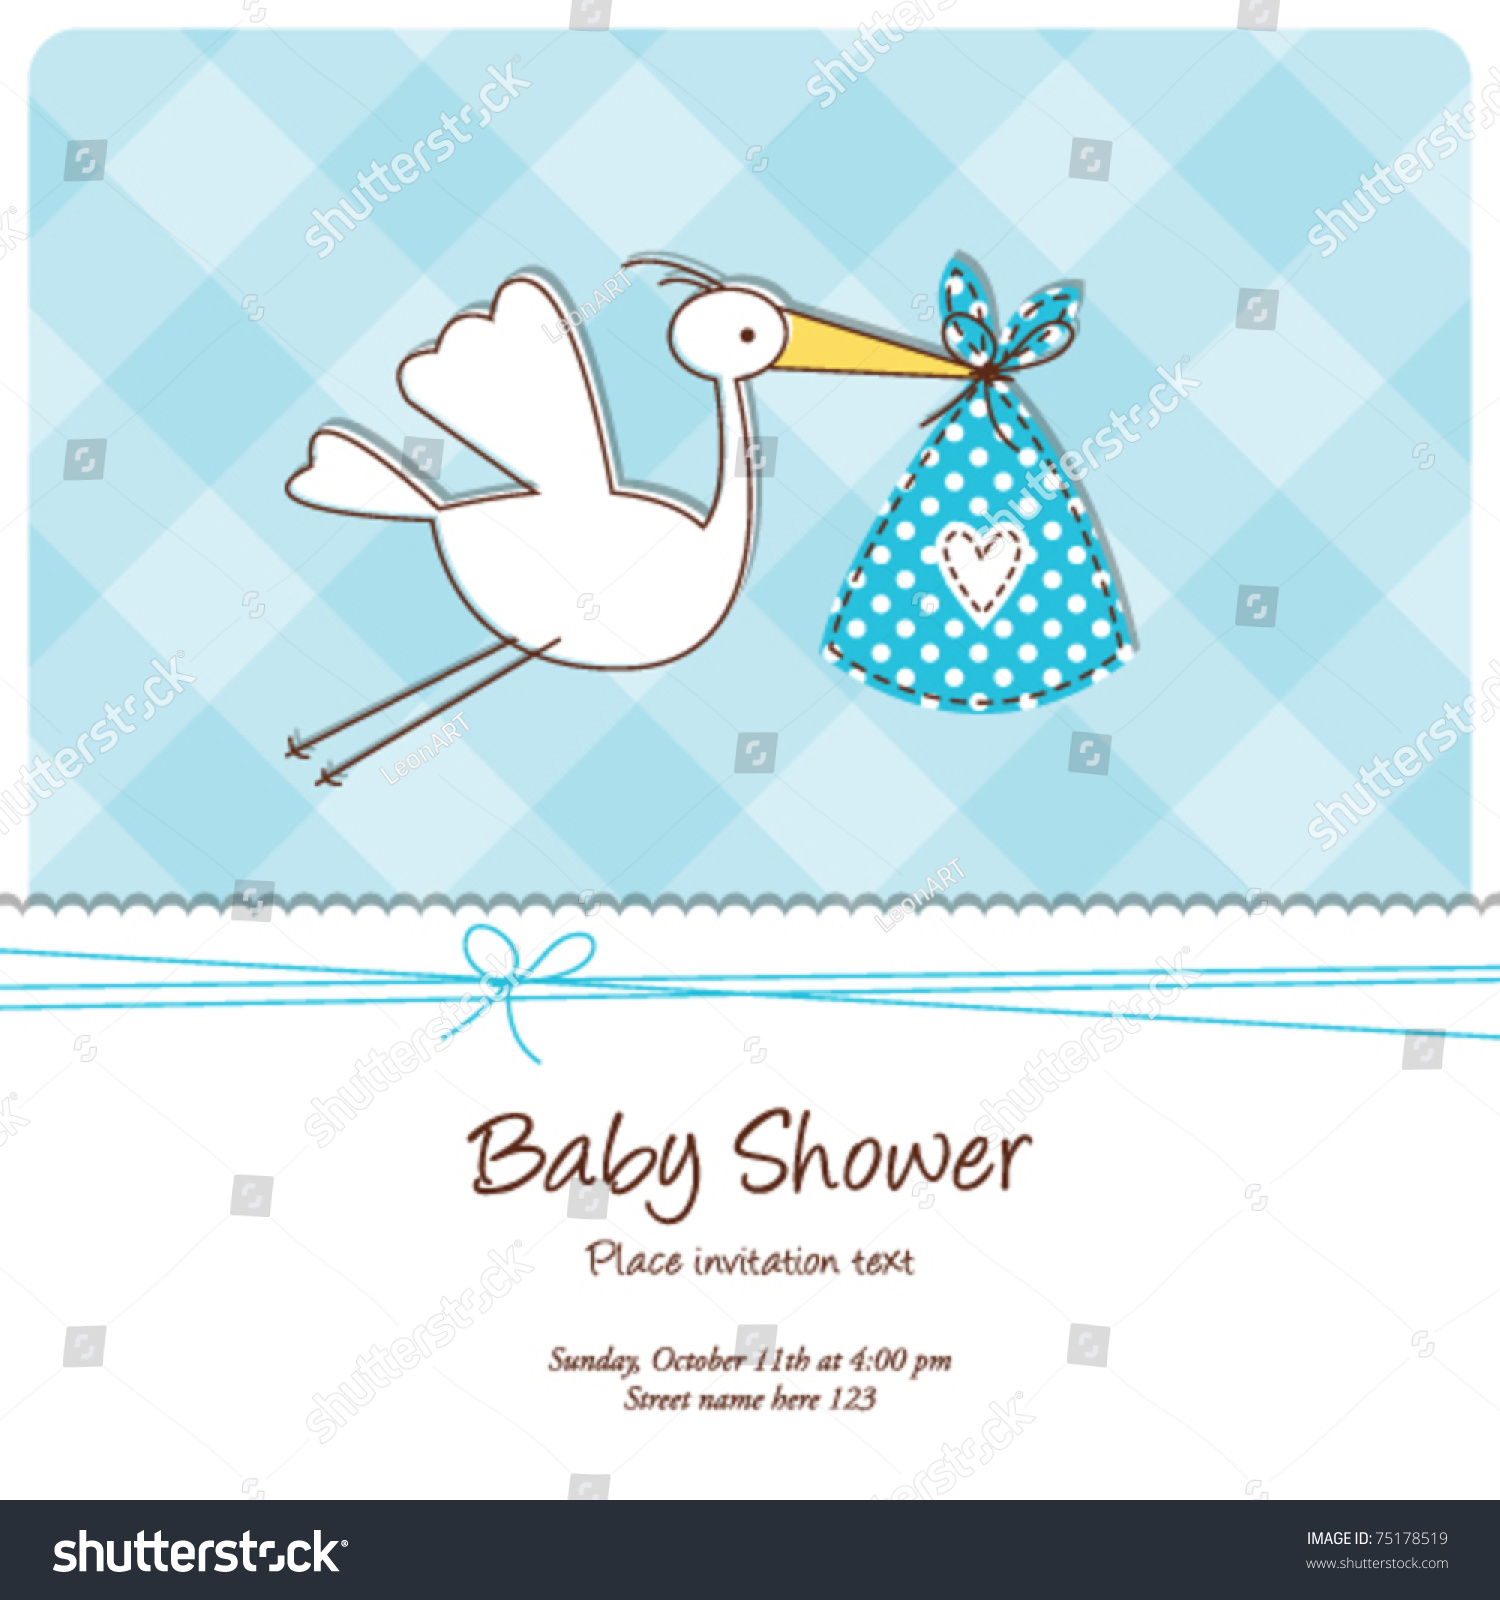 baby shower invitation template cute baby stock vector, Baby shower invitations